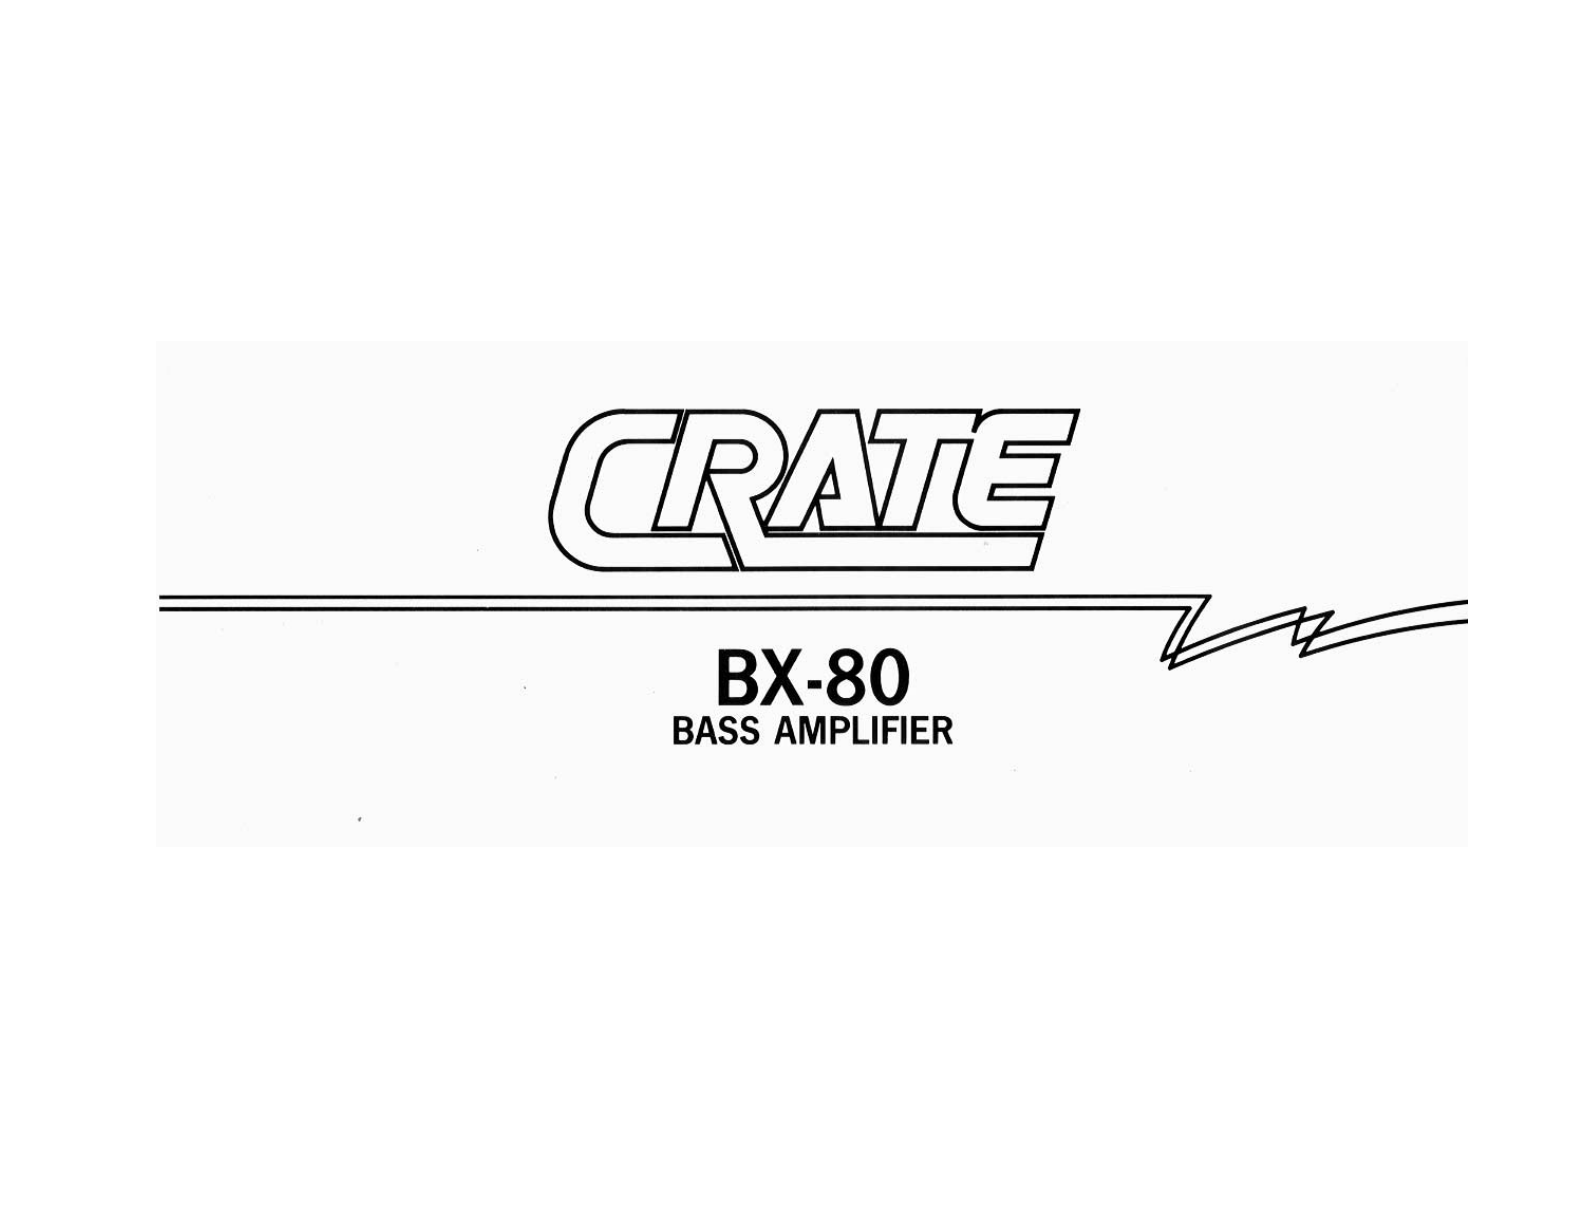 Wiring Diagram Crate Guitar Amplifier Page 3 And Bass Amp Amplifiers Al Instrument Bx 80 User Guide Yamaha B